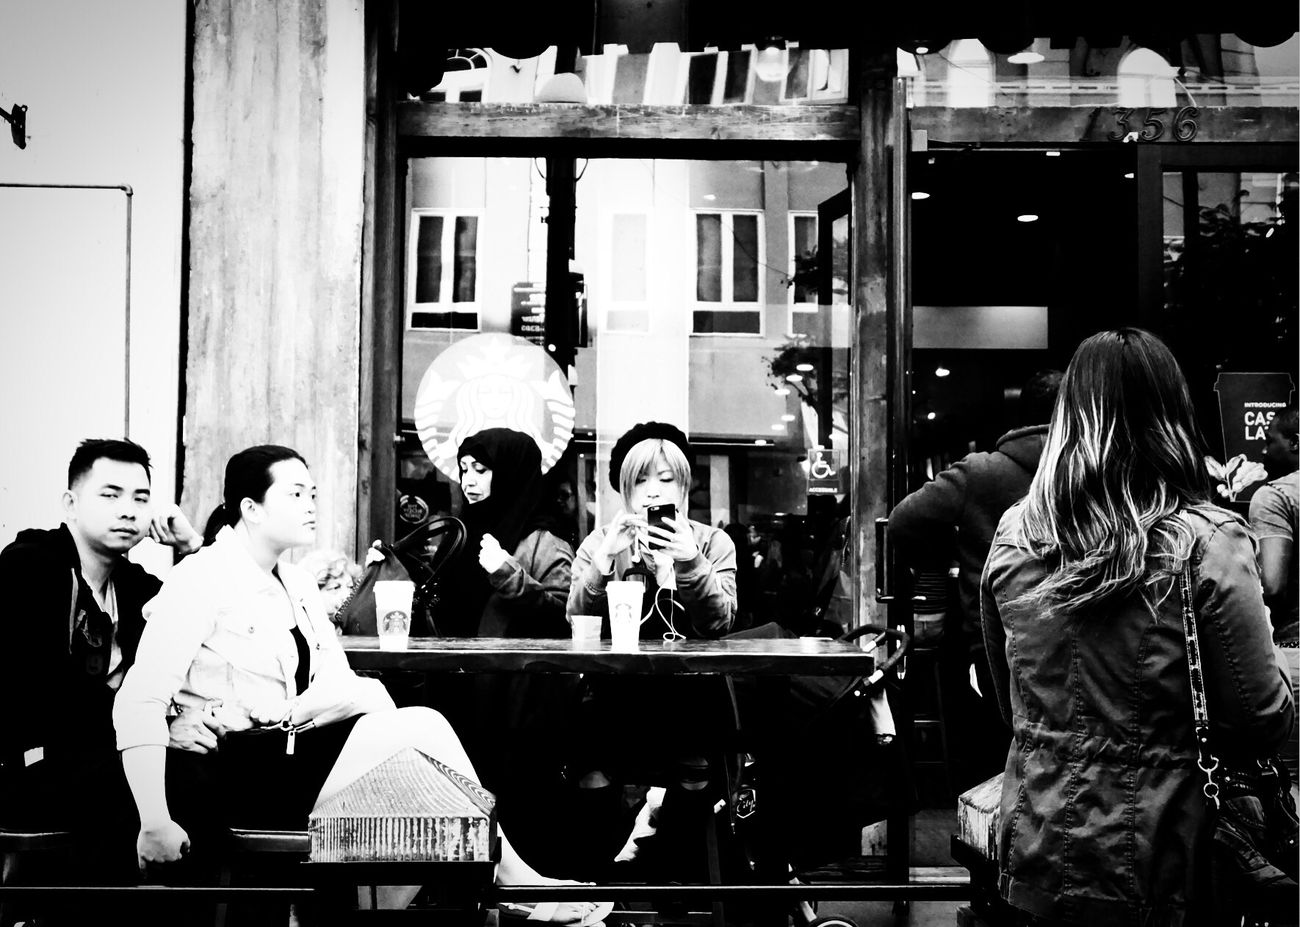 Sitting Real People People Light And Shadow Enjoying Life Beautiful Woman California Dreaming EyeEm Gallery Eyeemphotography Lifestyles Black And White Black & White EyeEm Bnw Black And White Photography Bnw Santa Monica California Love To Live And Die In LA ILoveLA SundayFunday Sunday Good Morning Hello Sunshine